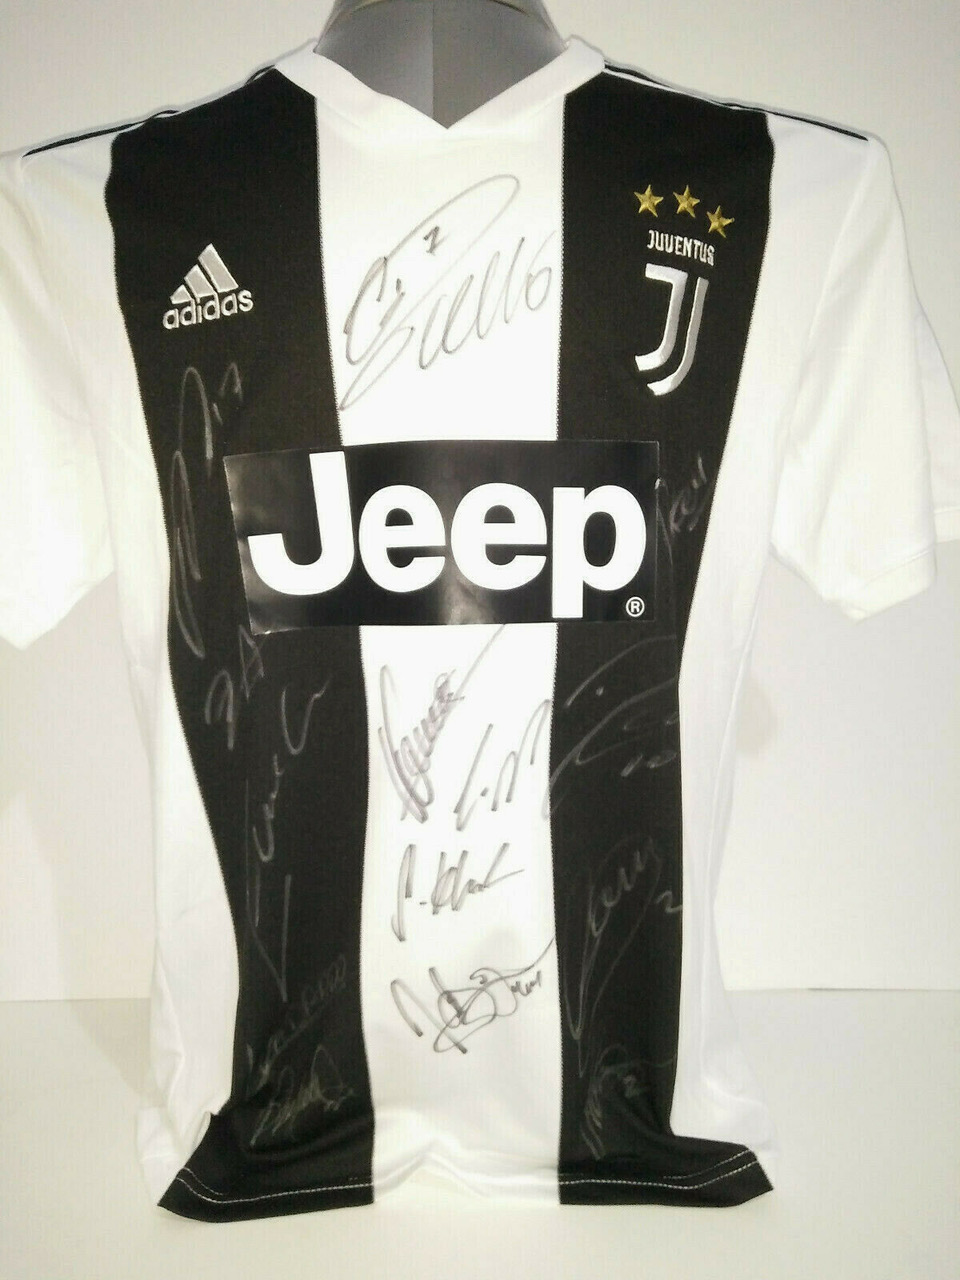 A Juventus 2018/19 team signed t-shirt including Ronaldo and Dybala